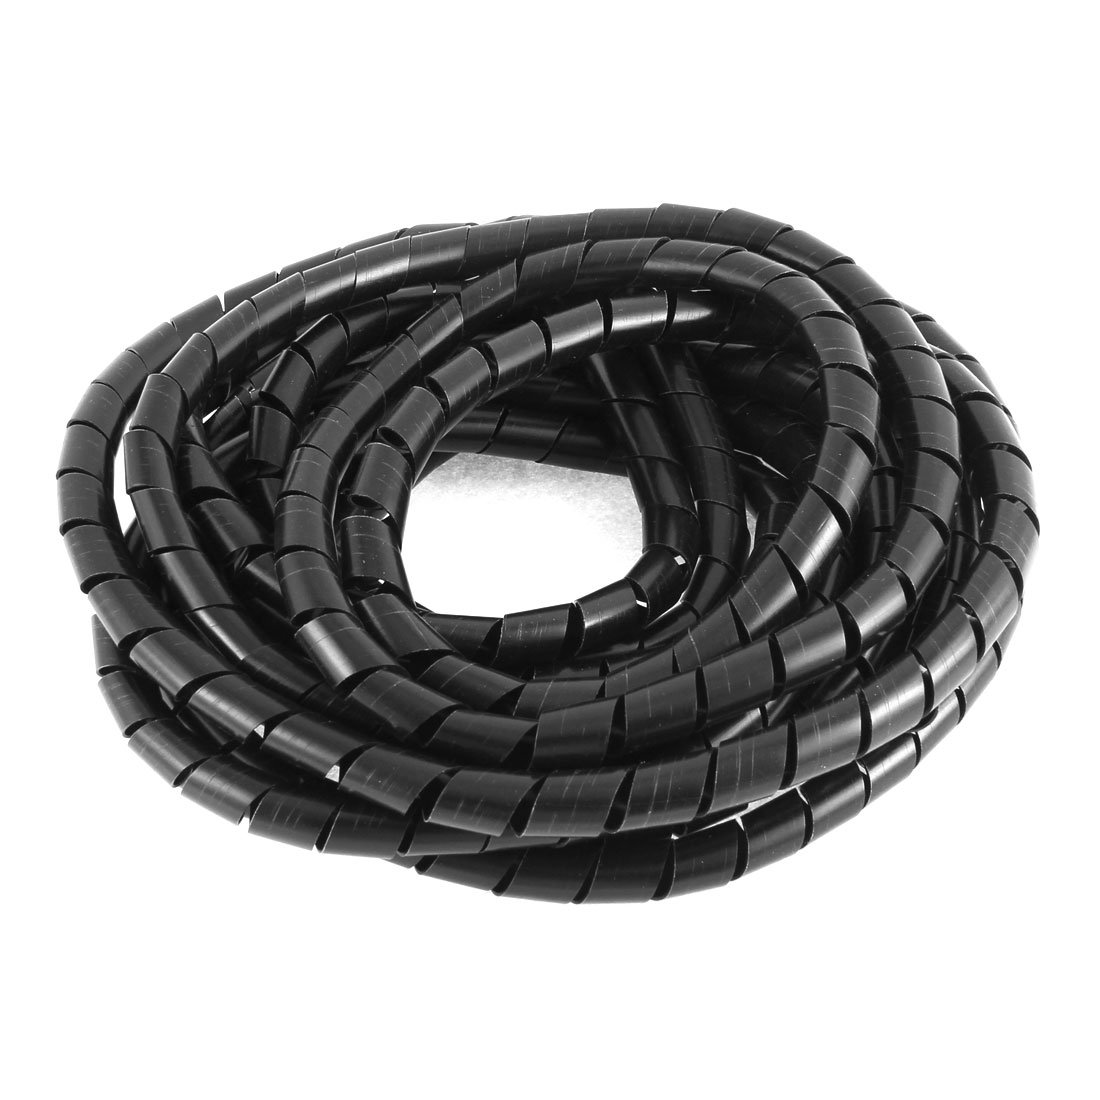 uxcell Cinema TV Organizer Cable Wire Wrap Spiral Wrapping Band 12mm 7M Black